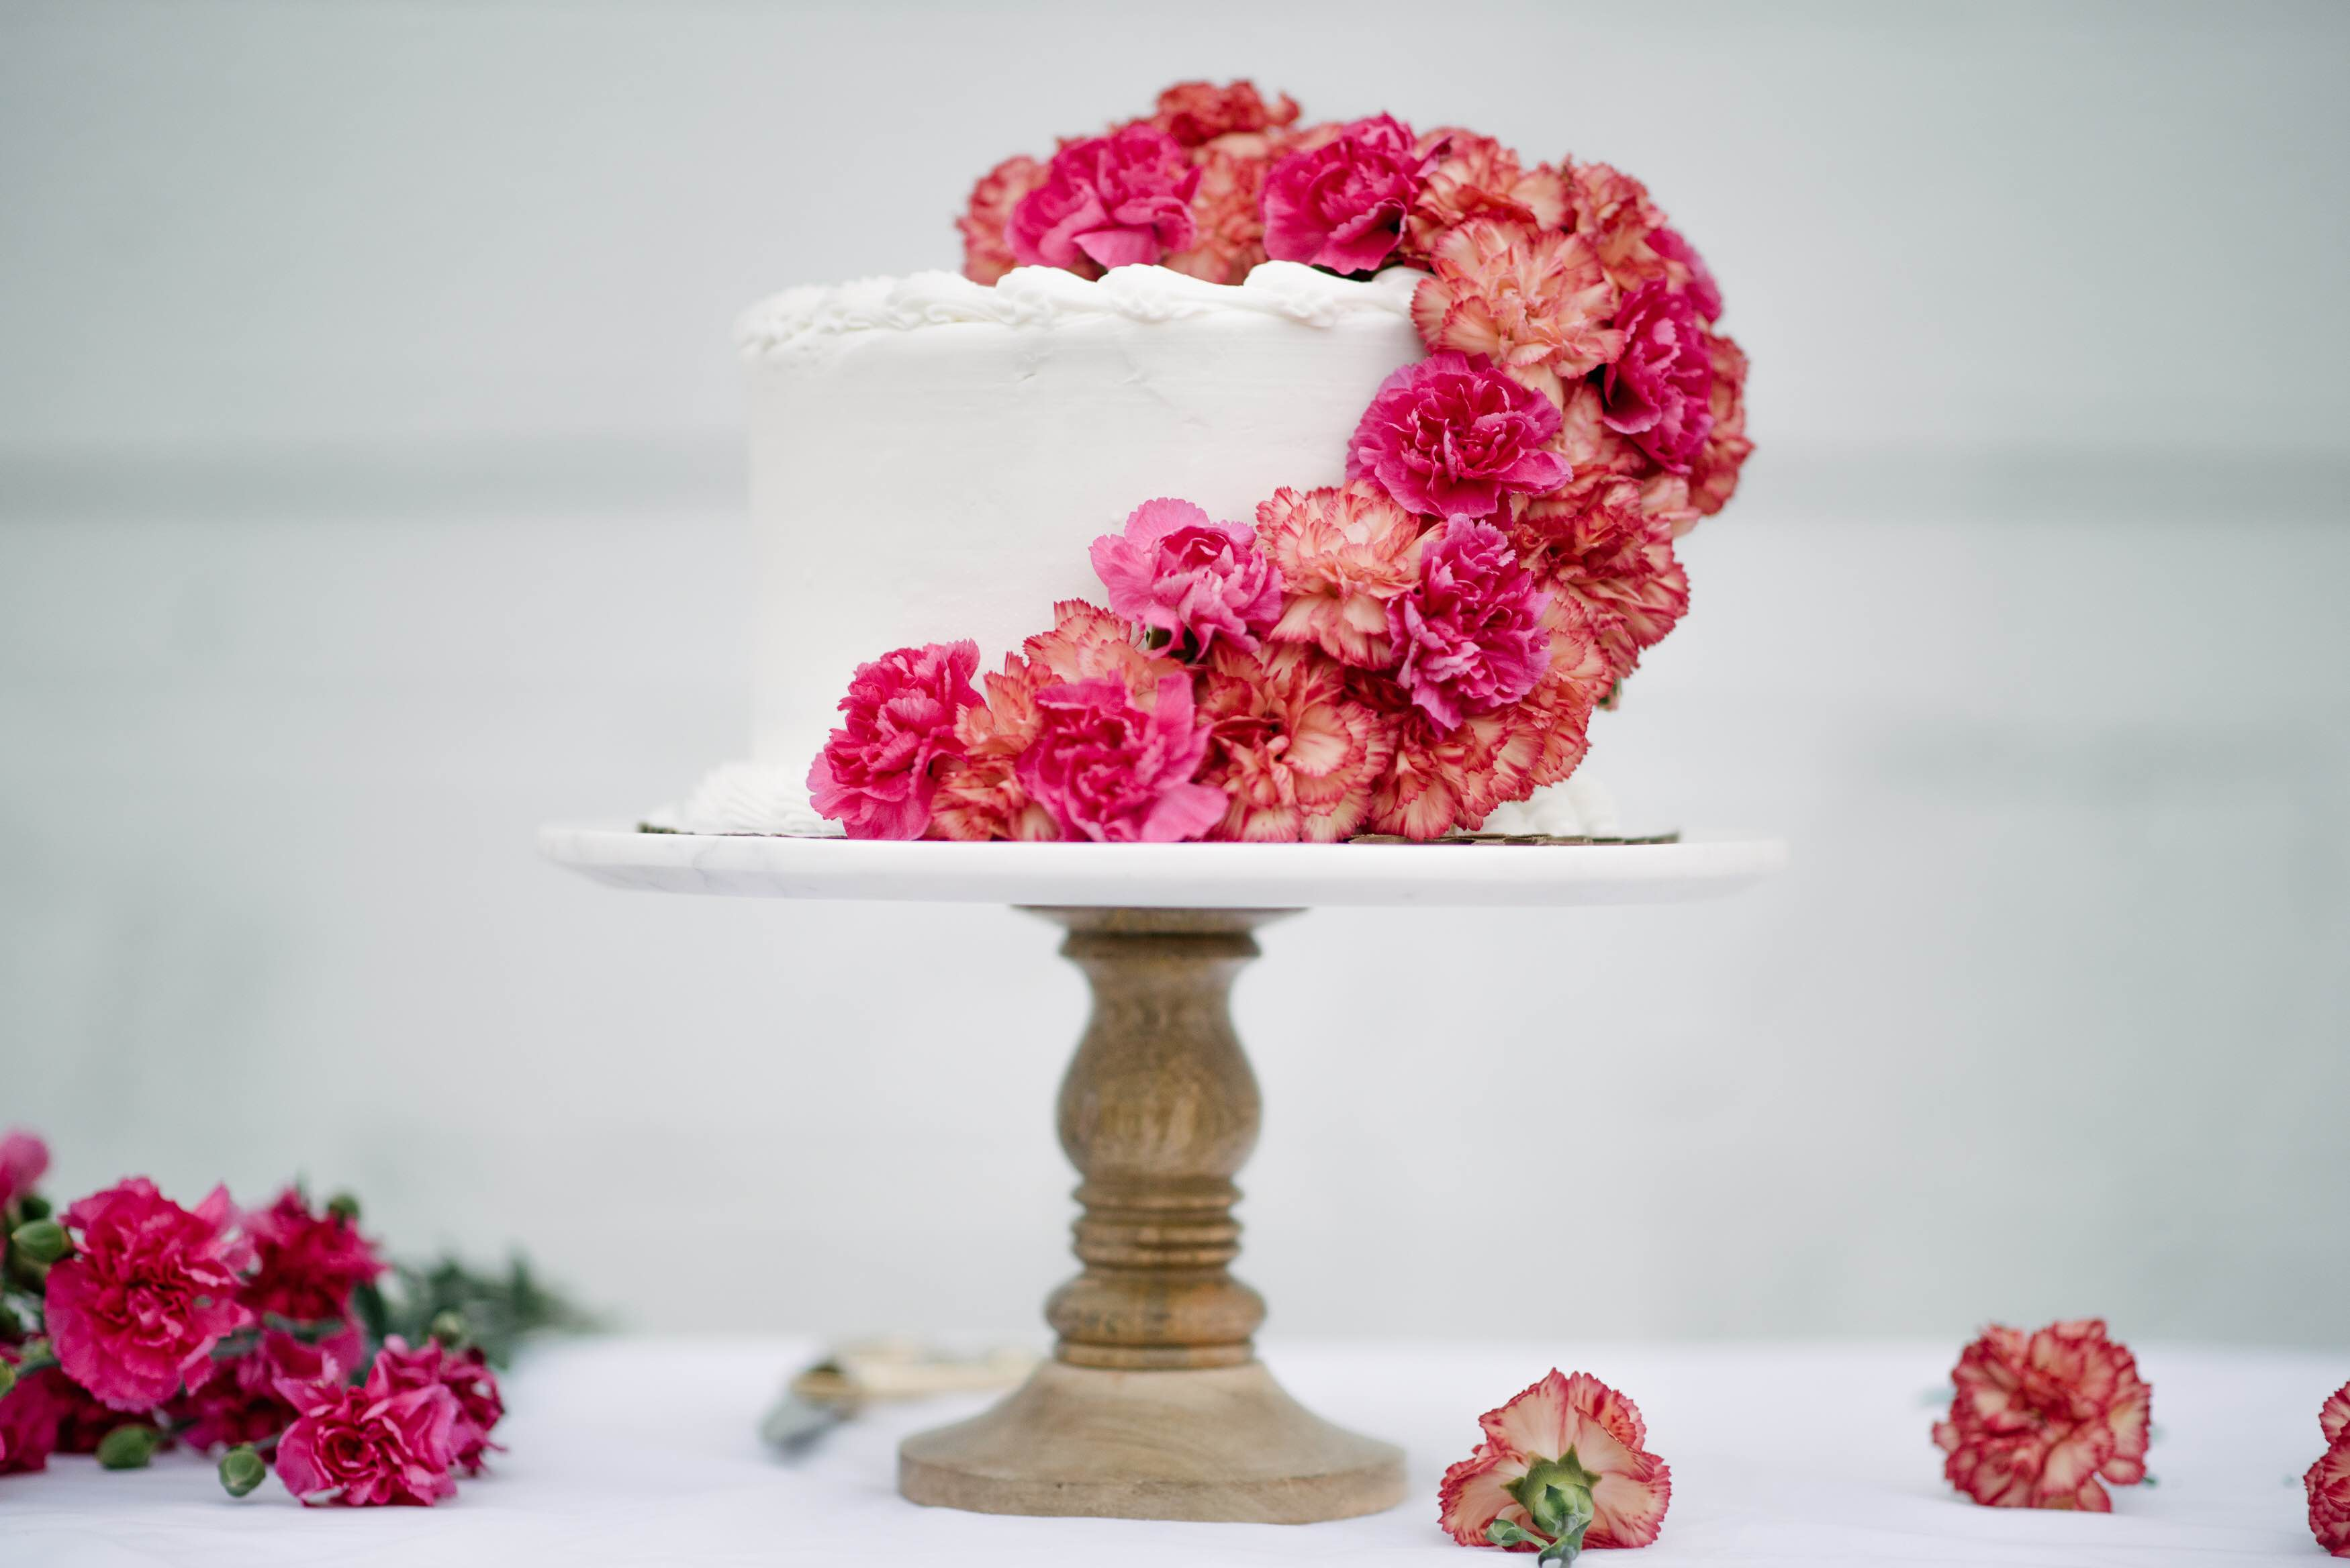 DIY Fresh Floral Cake Topper - Let's Mingle Blog